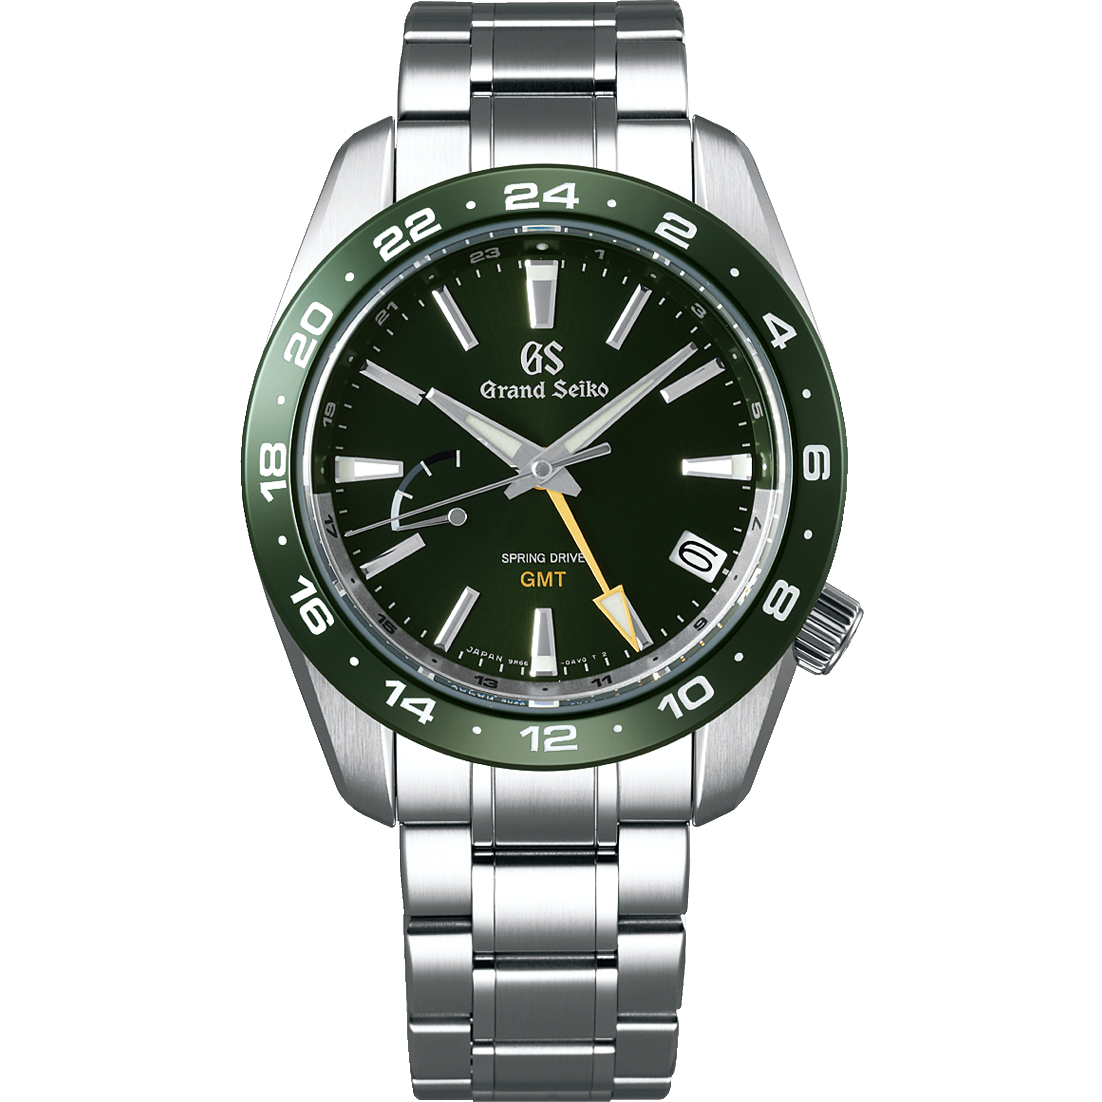 SBGE257 Grand Seiko Green Dial Spring Drive GMT 40.5mm